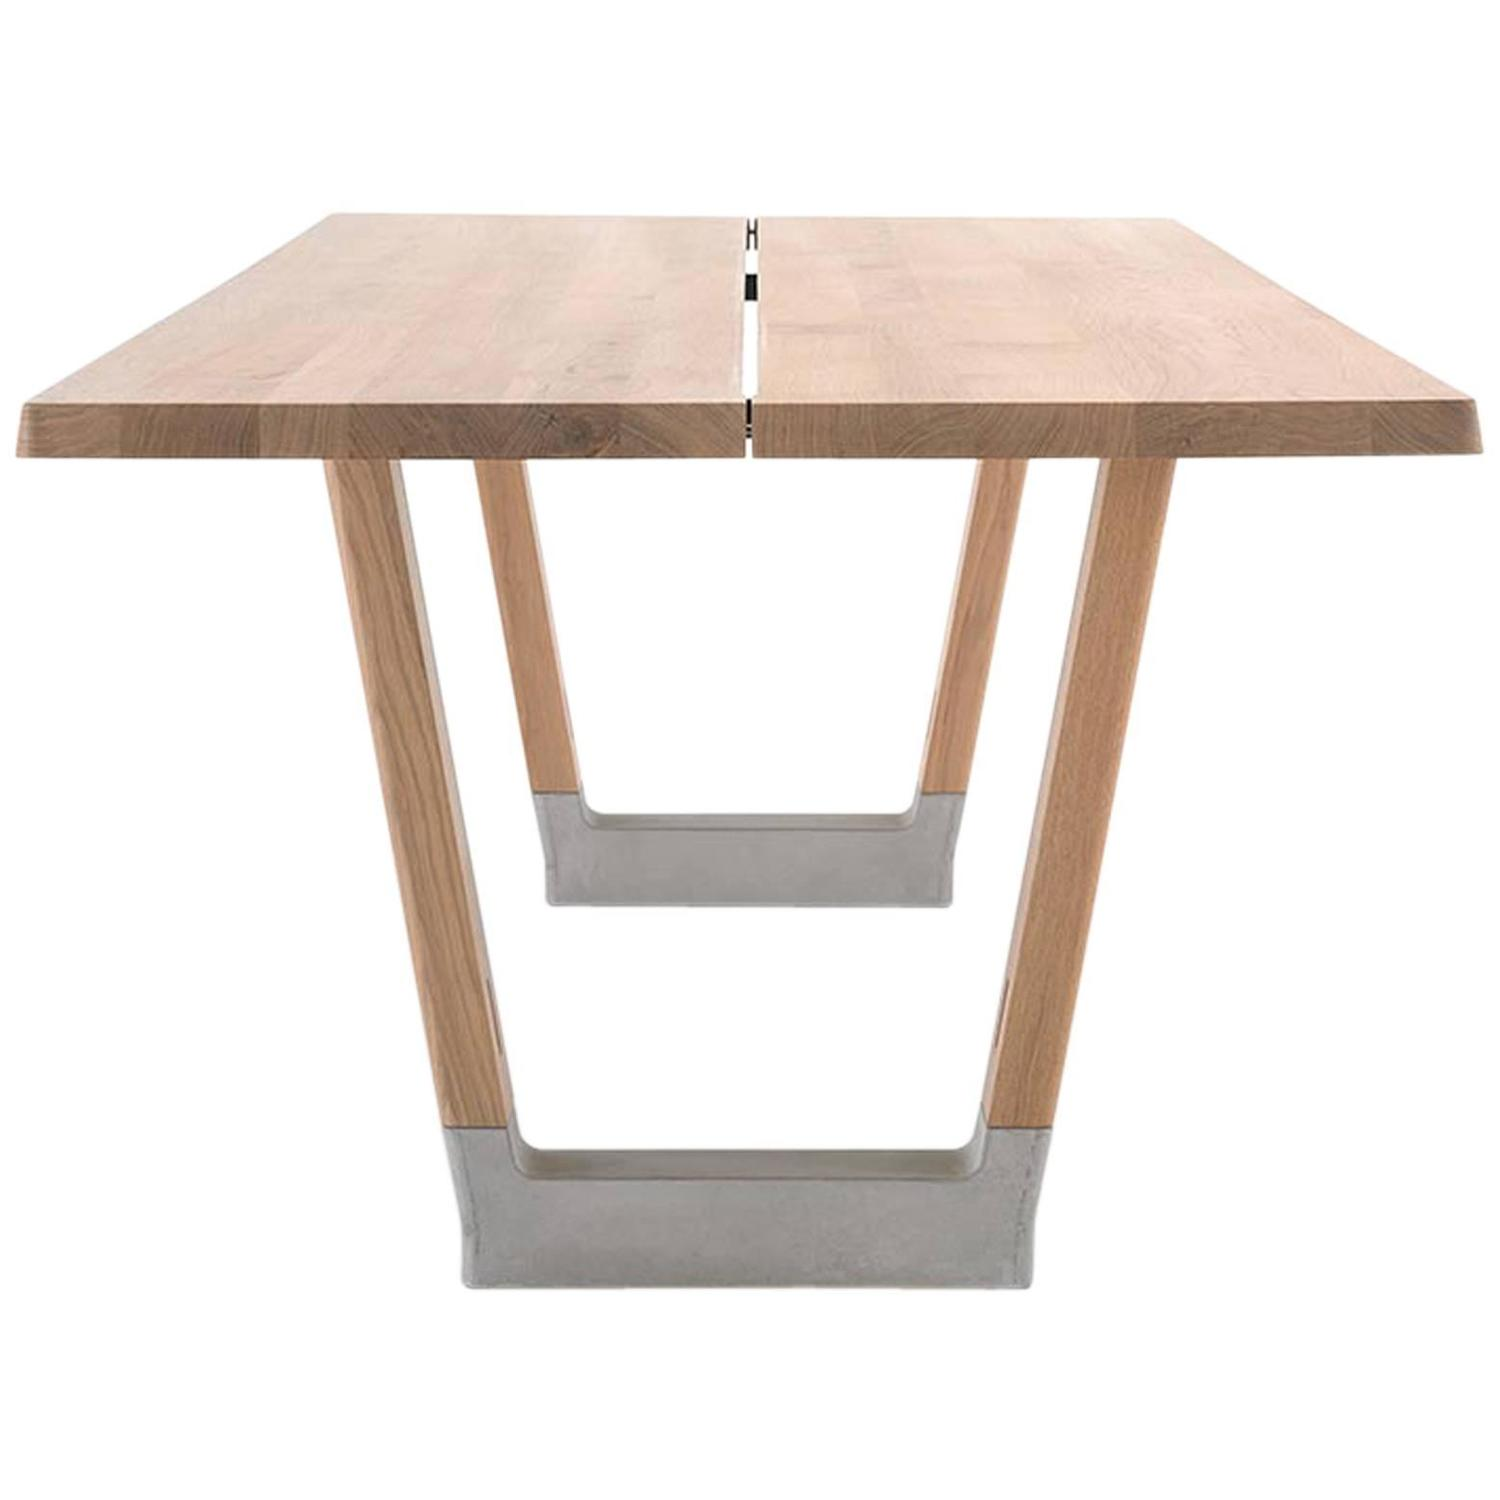 Slingshot Contemporary Dining Table with Trestle Legs in Solid